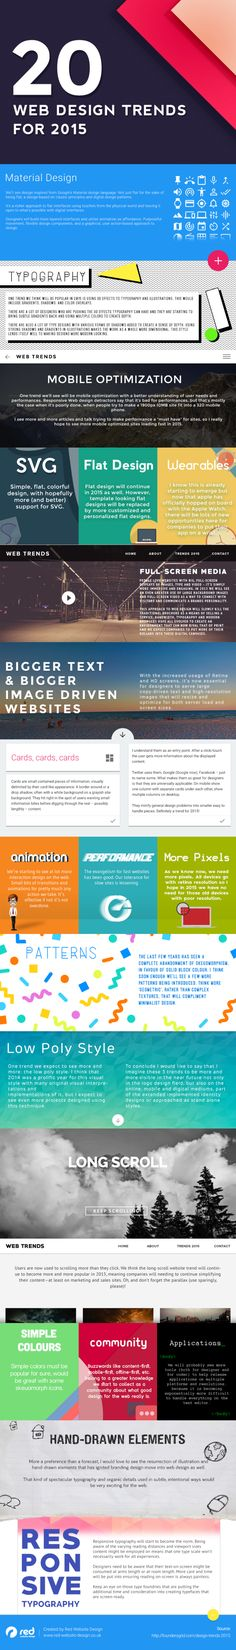 20 Web Design Trends You Can Expect to See in 2015 #Infographic